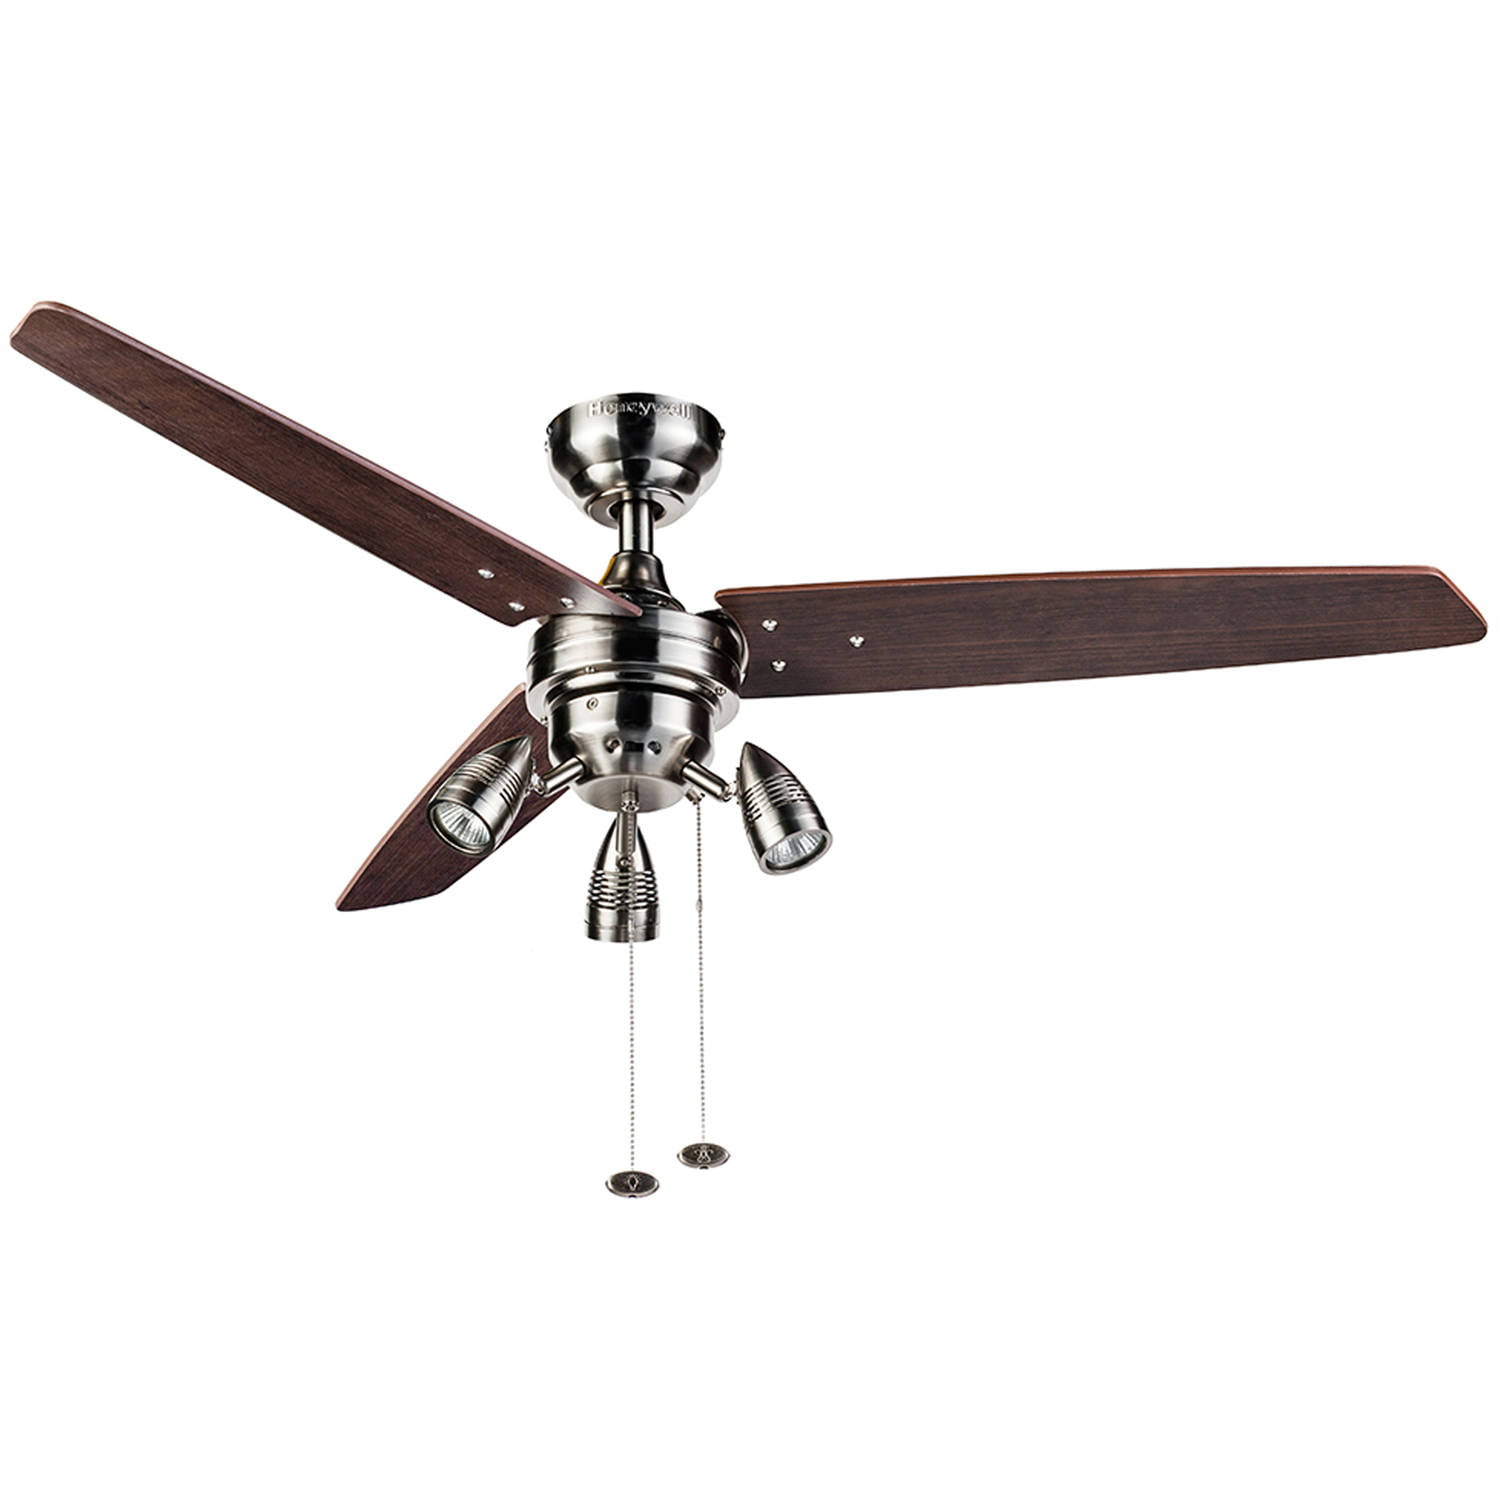 Big air 96 6 speed industrial ceiling fan in brushed nickel big air 96 6 speed industrial ceiling fan in brushed nickel walmart mozeypictures Image collections